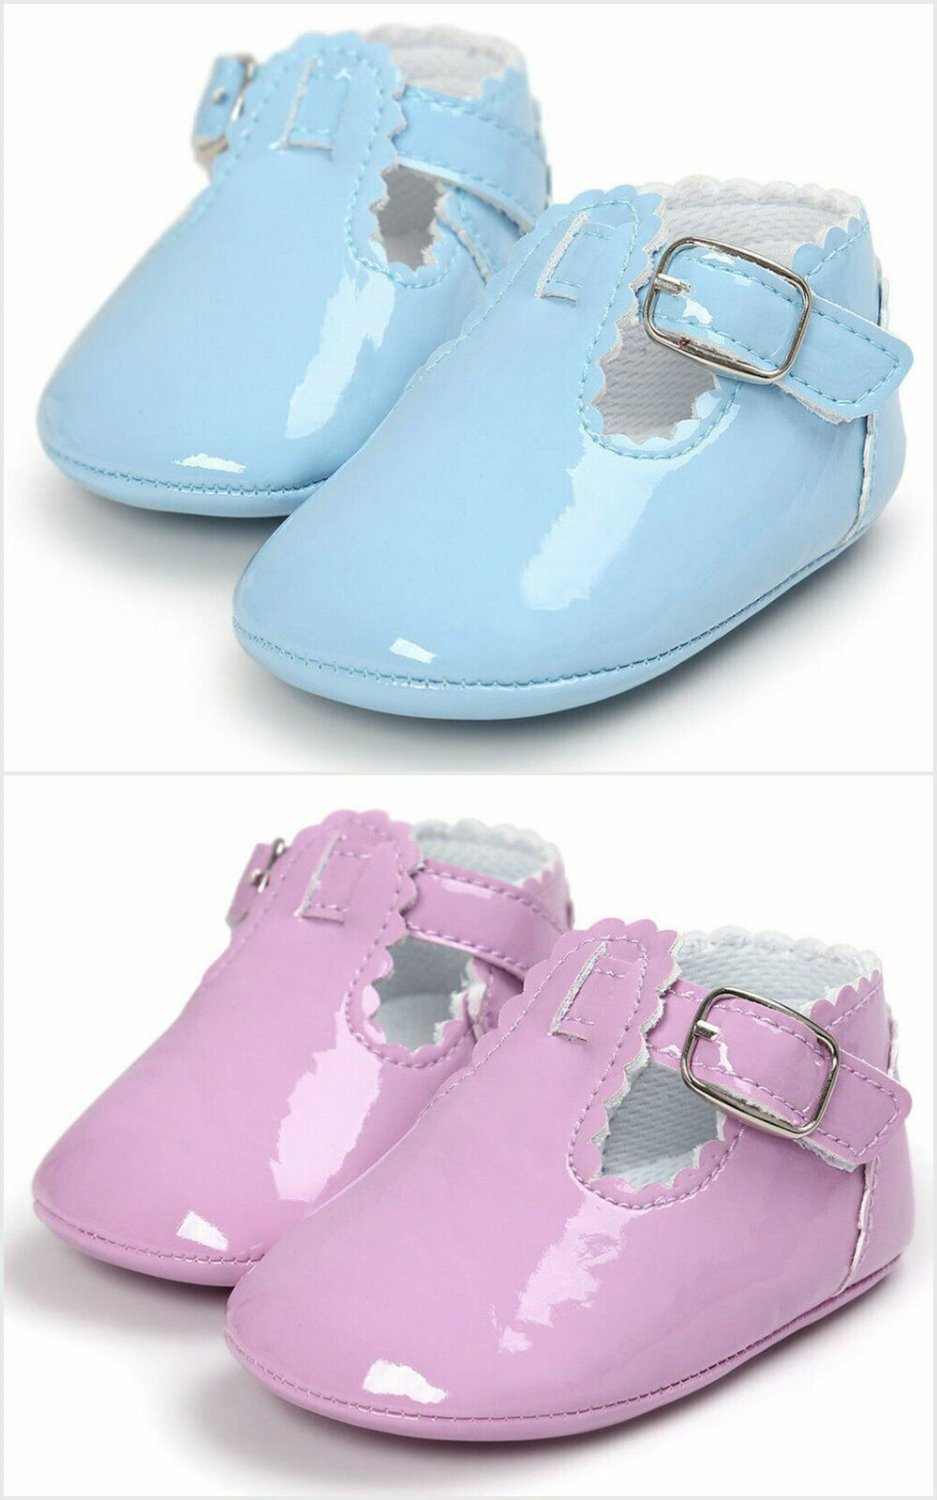 NEW Baby Girl Blue Faux Leather Mary Jane Crib Shoes 0-6 6-12 12-18 M